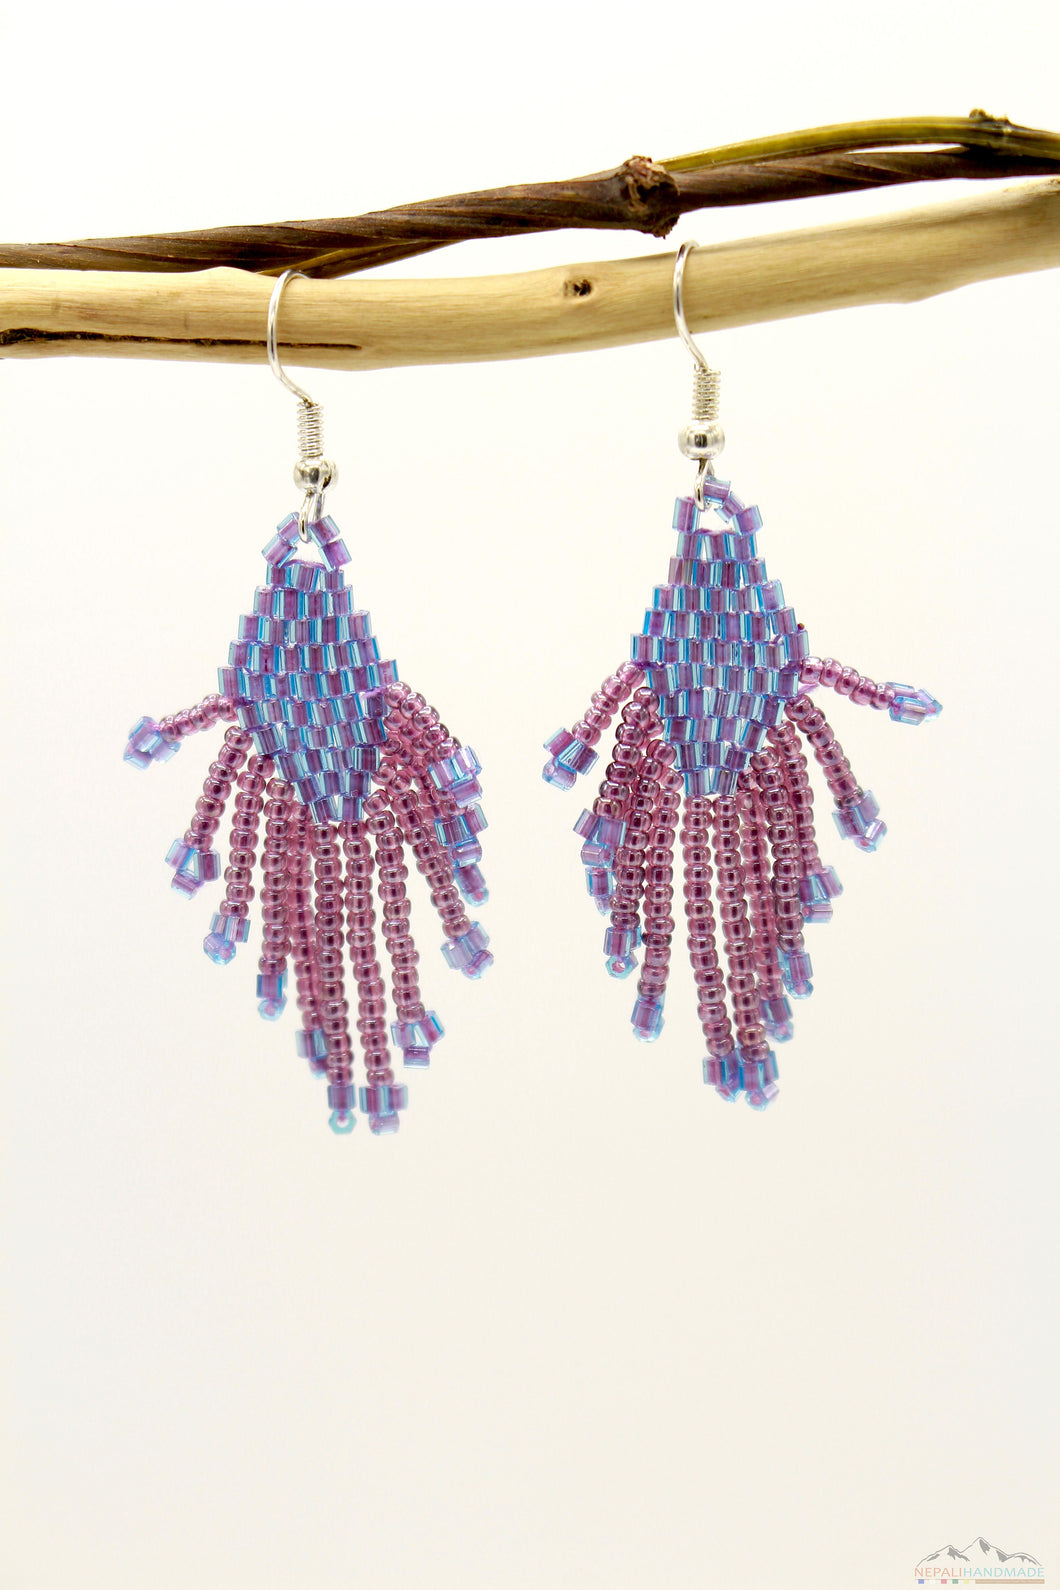 Medium Purple Glass Beads  Small Rhombus Chandelier Earring